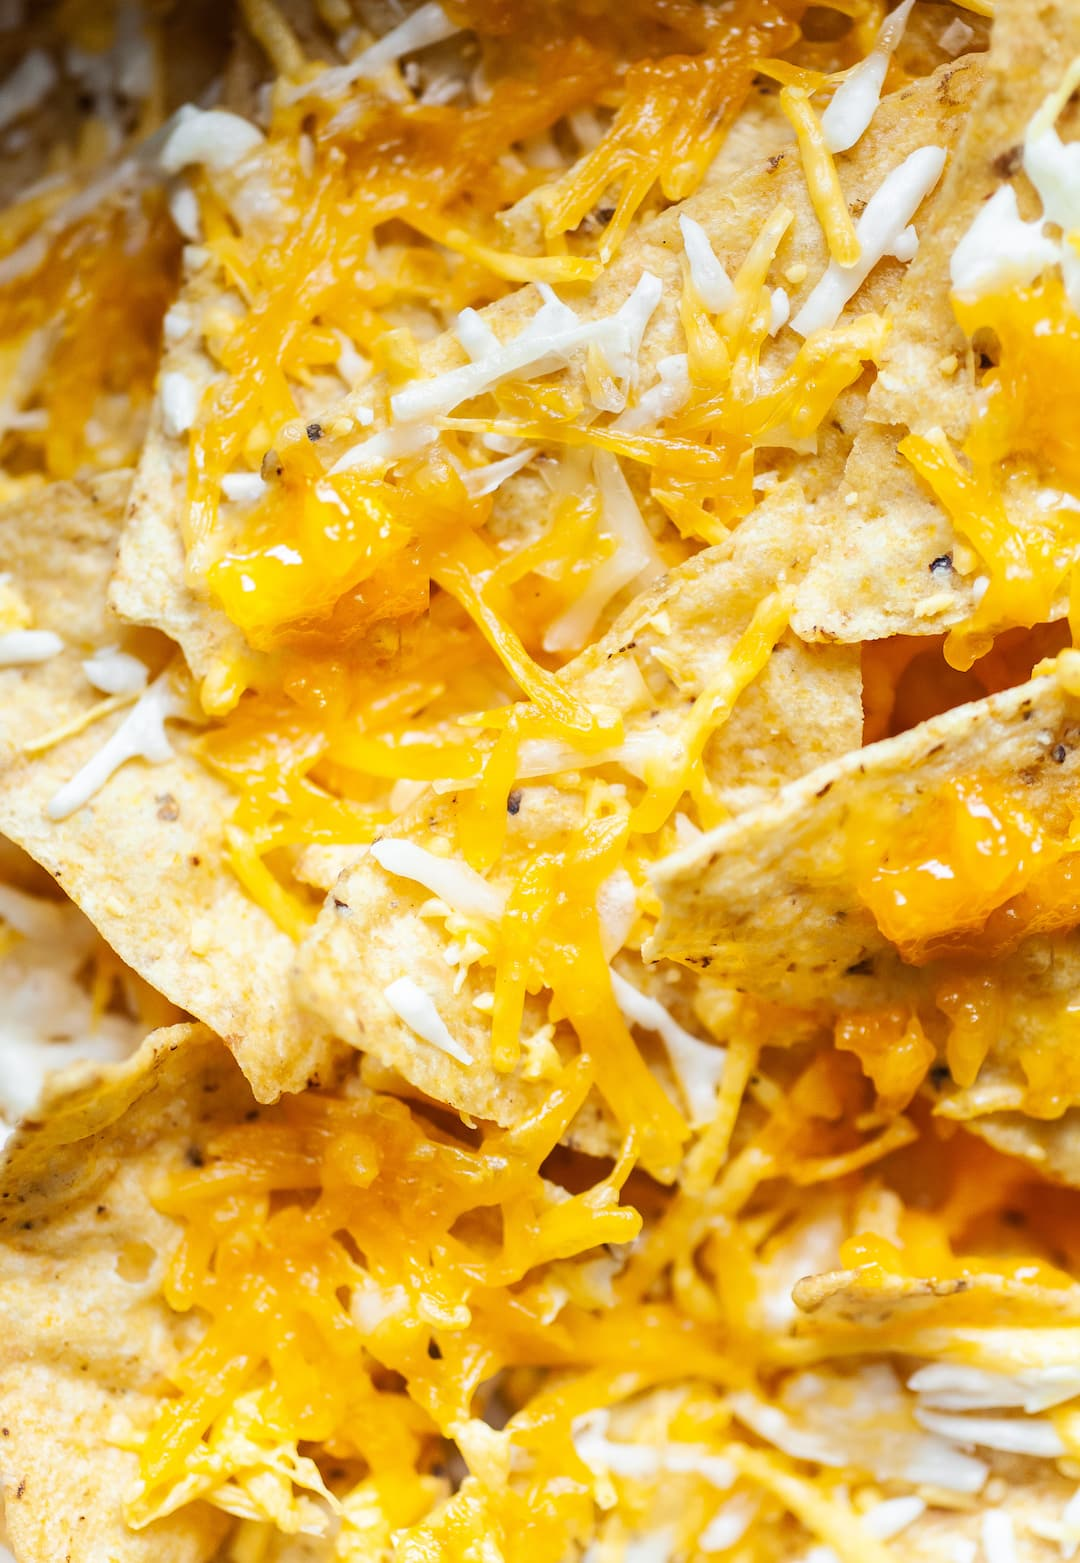 Close up of air fryer nachos - tortilla chips with melted cheese